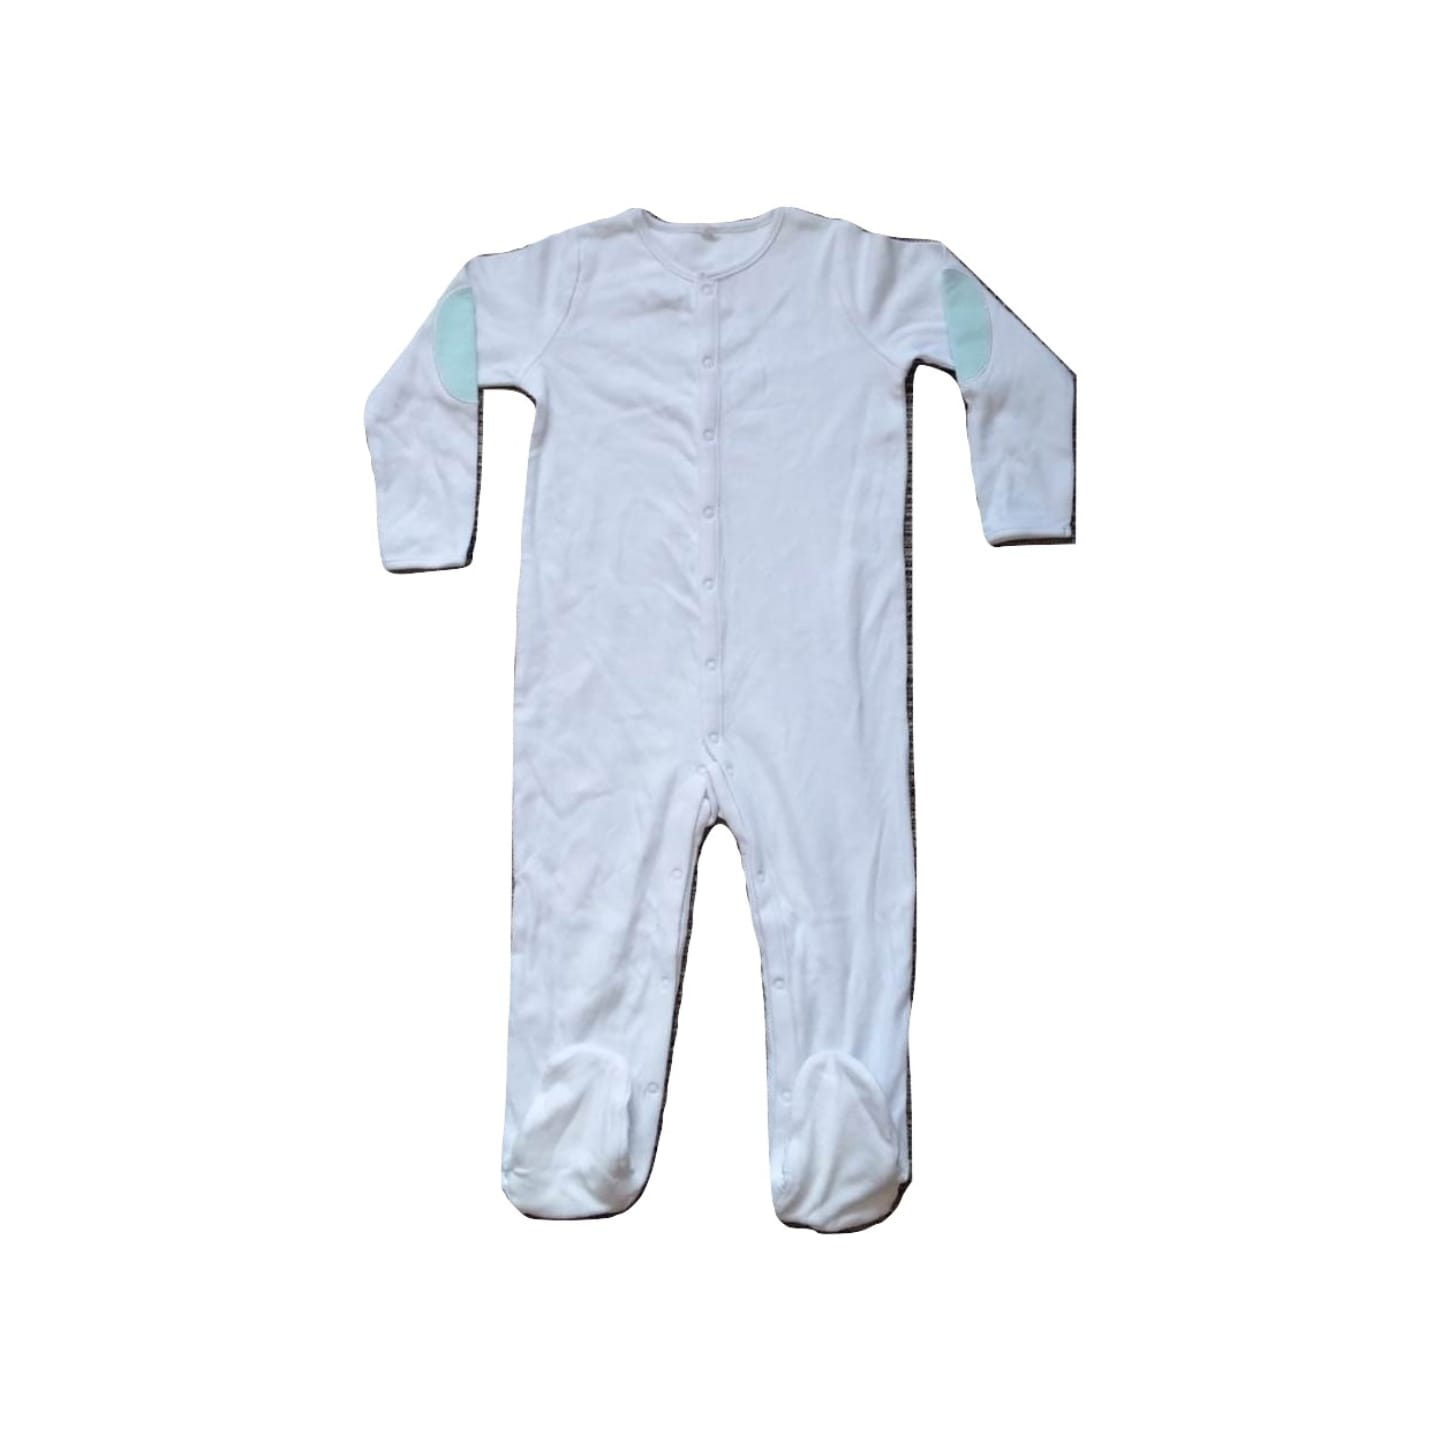 Baby Boys White with Blue Detail Sleepsuit